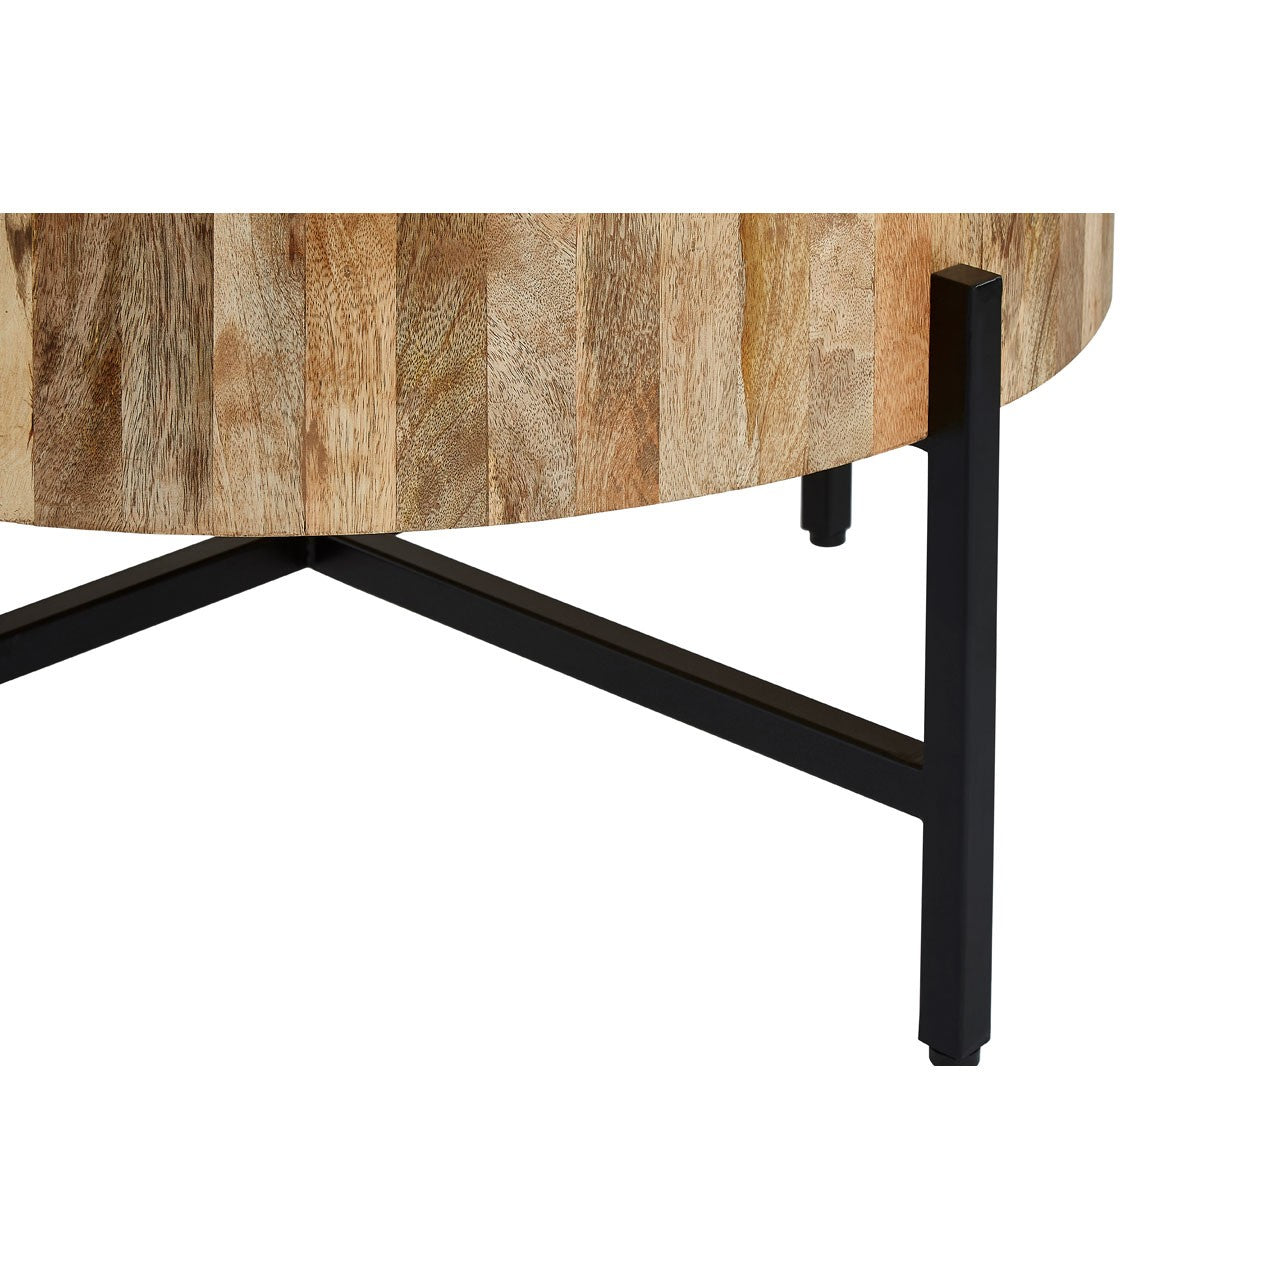 Crest Coffee Table - Ezzo